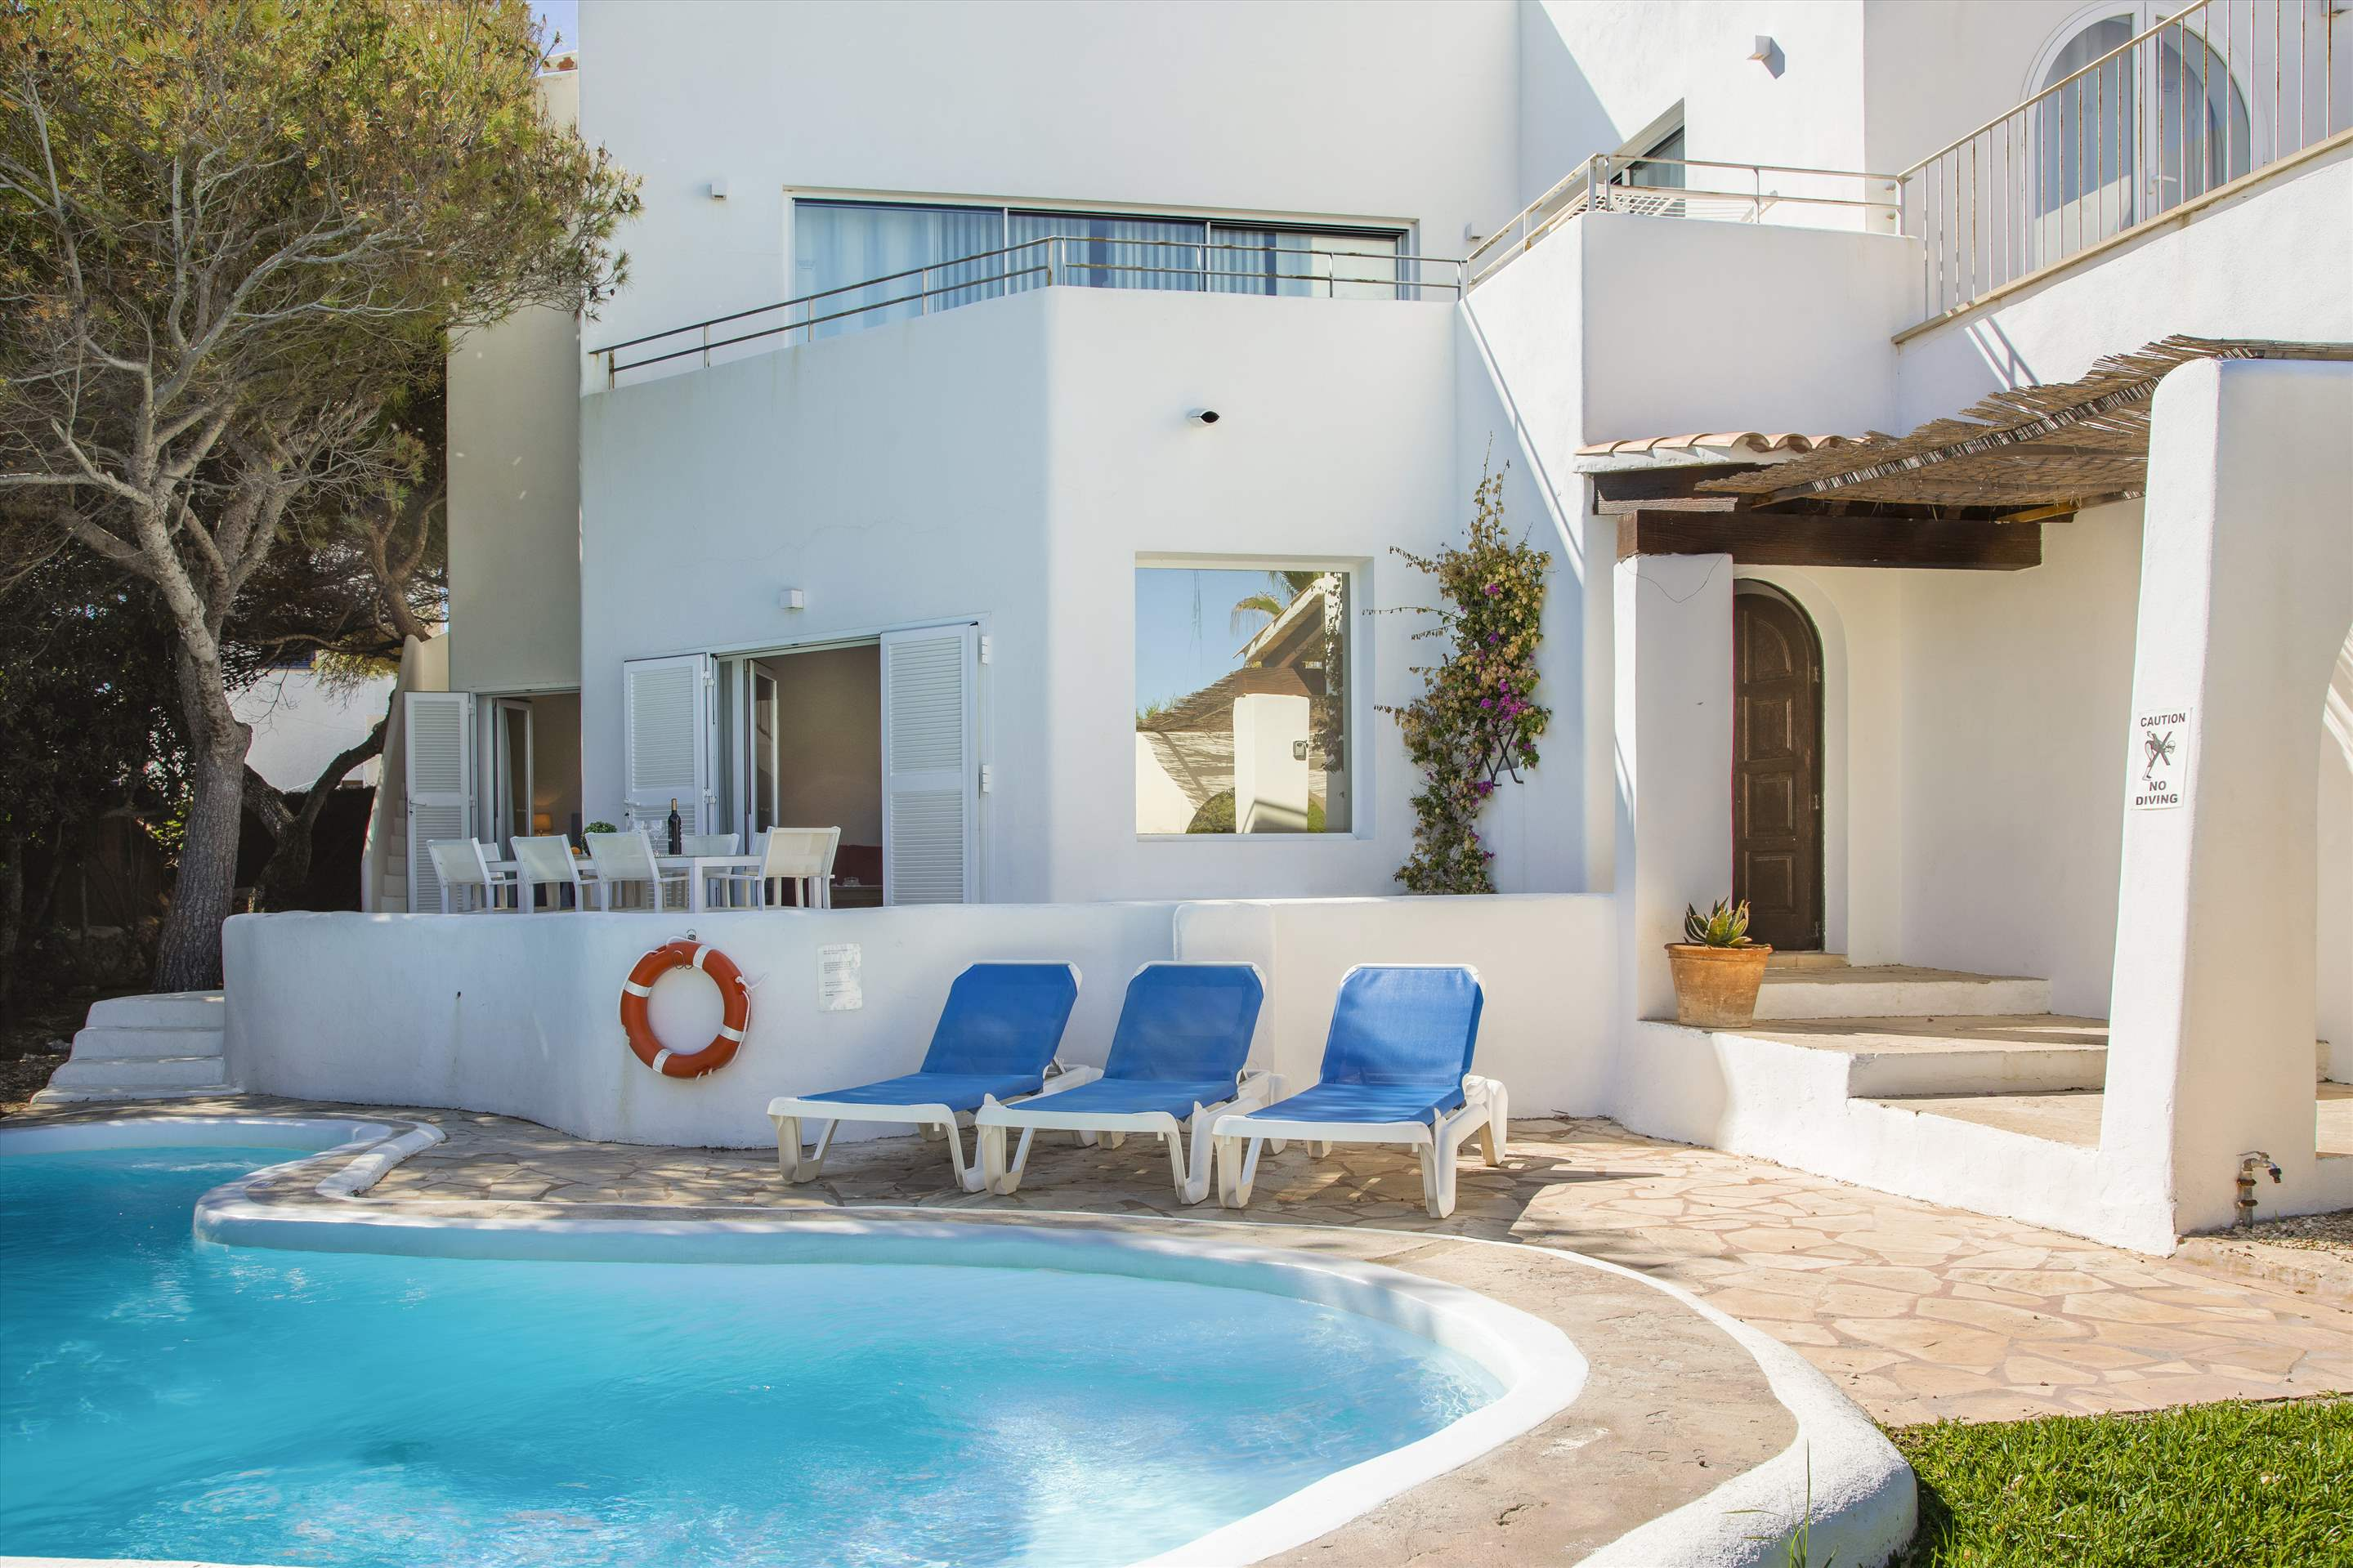 Mar Gran, 4 bedroom villa in Cala d'Or , Majorca Photo #14